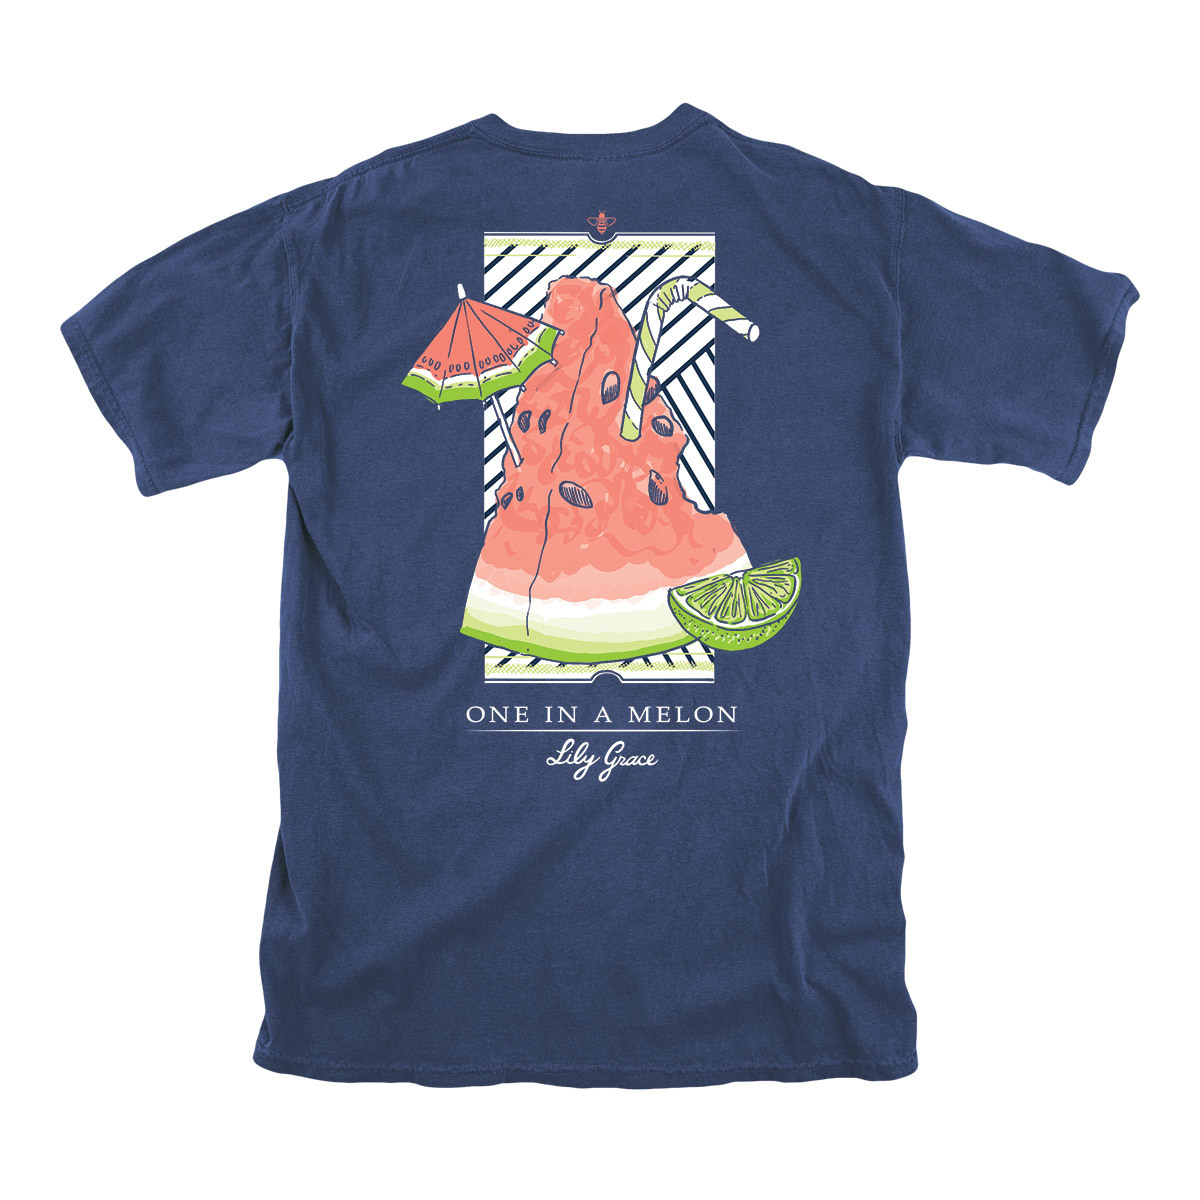 Lily Grace One in a Melon T-Shirt